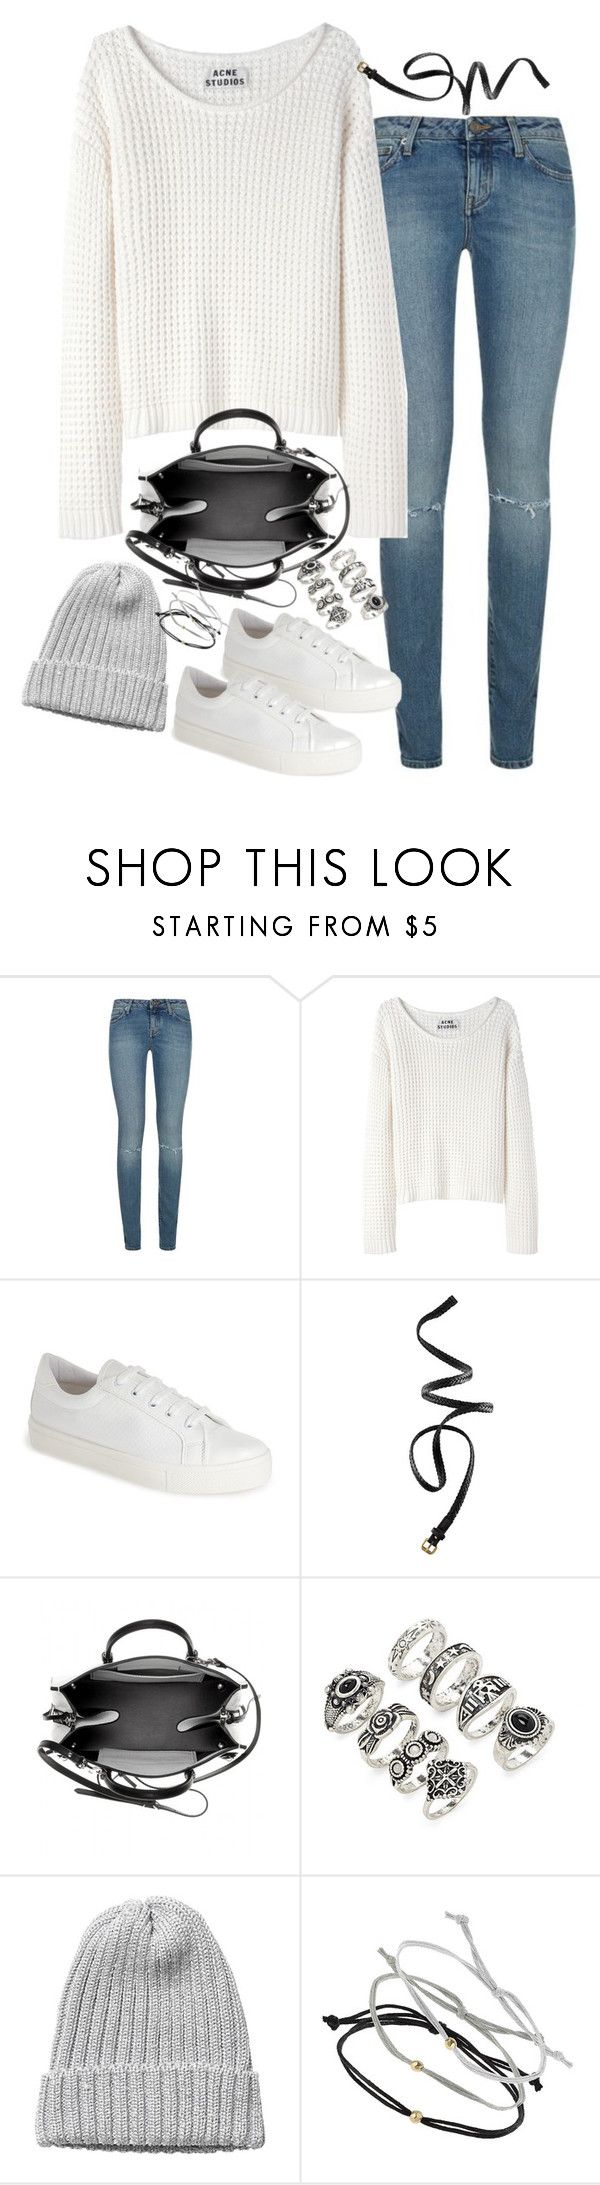 """Untitled#4096"" by fashionnfacts ❤ liked on Polyvore featuring Yves Saint Laurent, Acne Studios, Topshop, H&M, Balenciaga, Forever 21 and Monki"